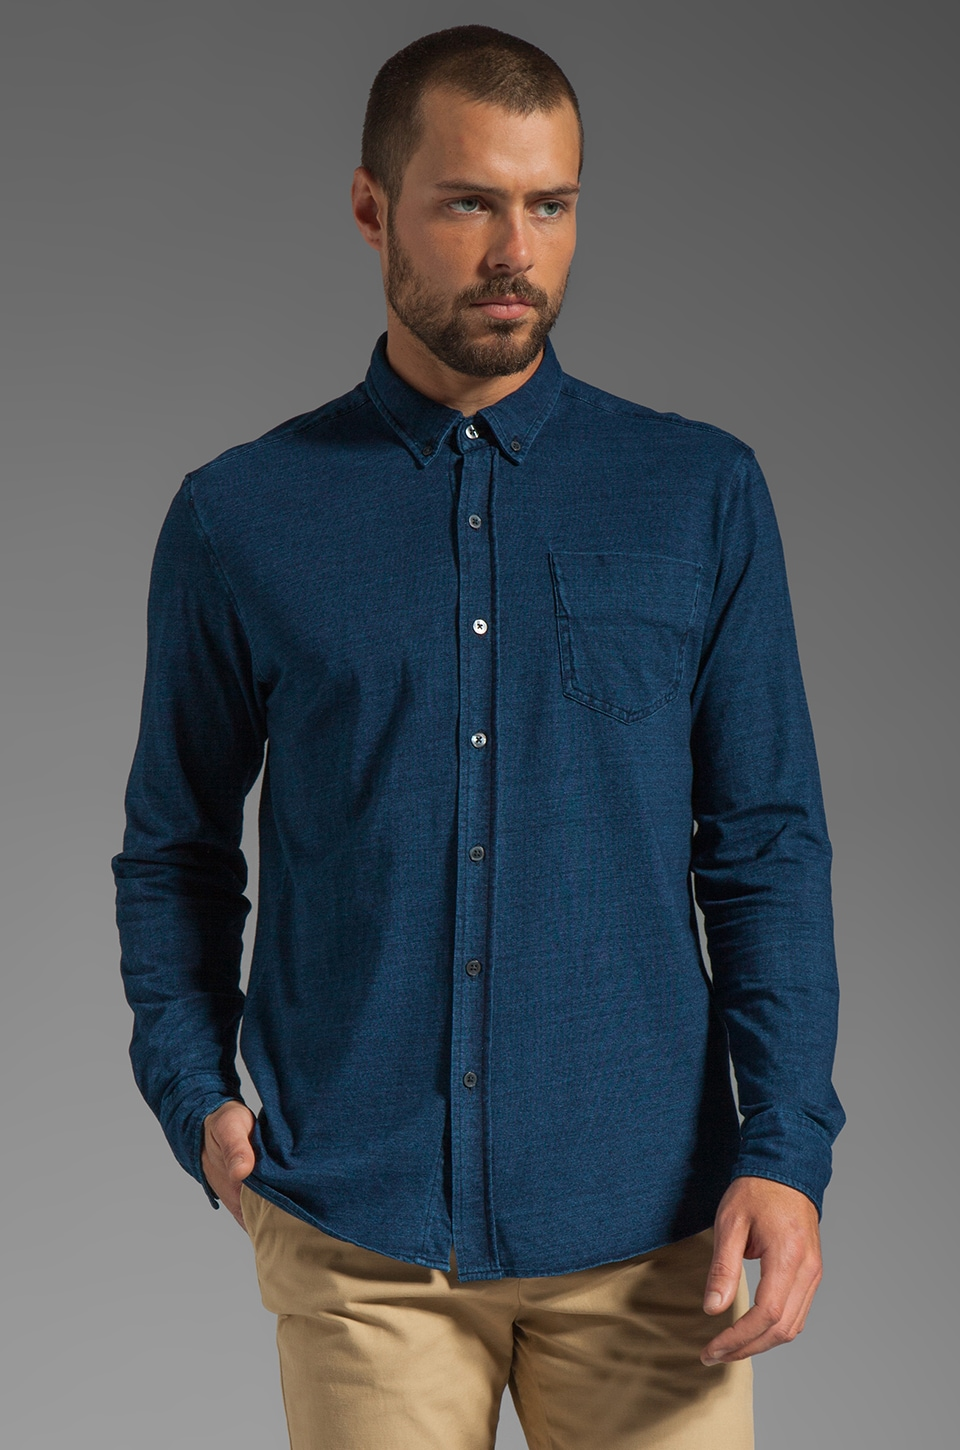 WRK Tailor's Long Sleeve Shirt in Navy